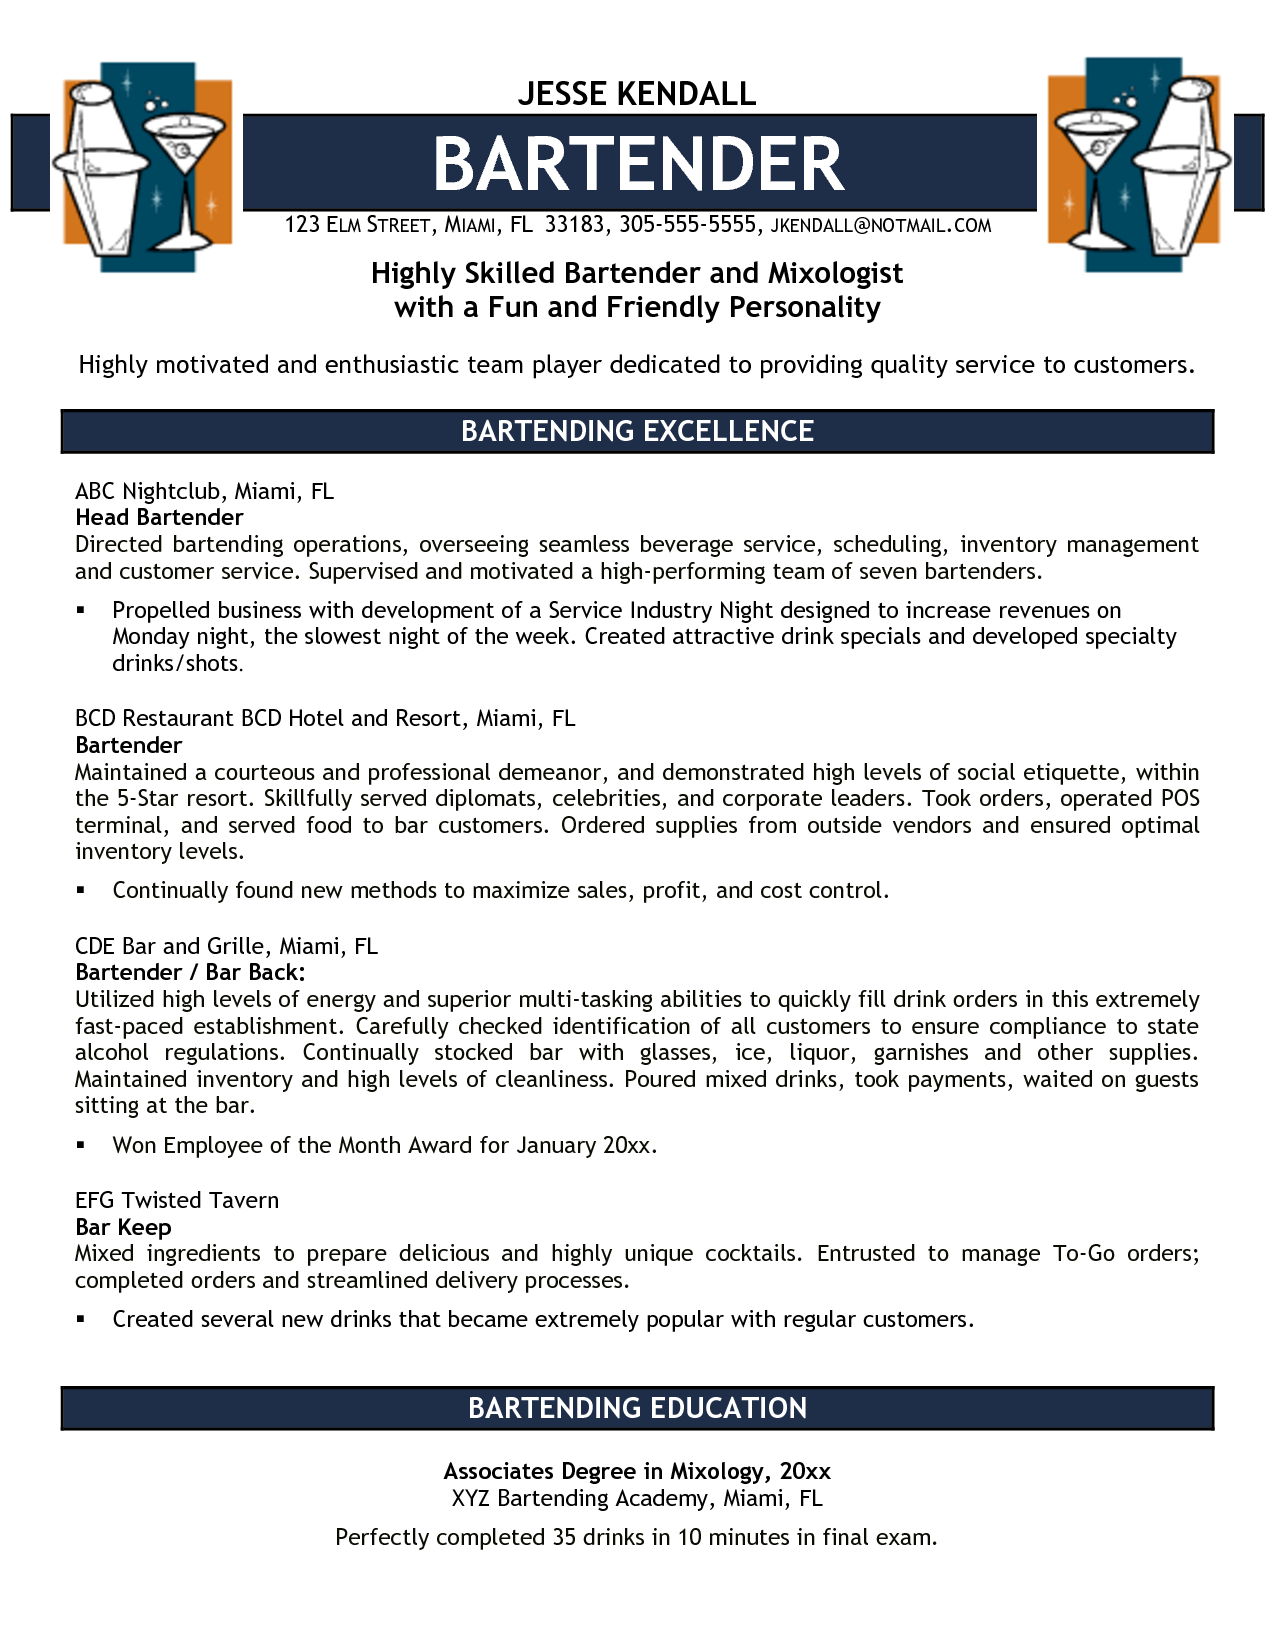 free bartender resume templates highly skilled bartender and mixologist with a fun and friendly personality bartender resume bartender resume sample